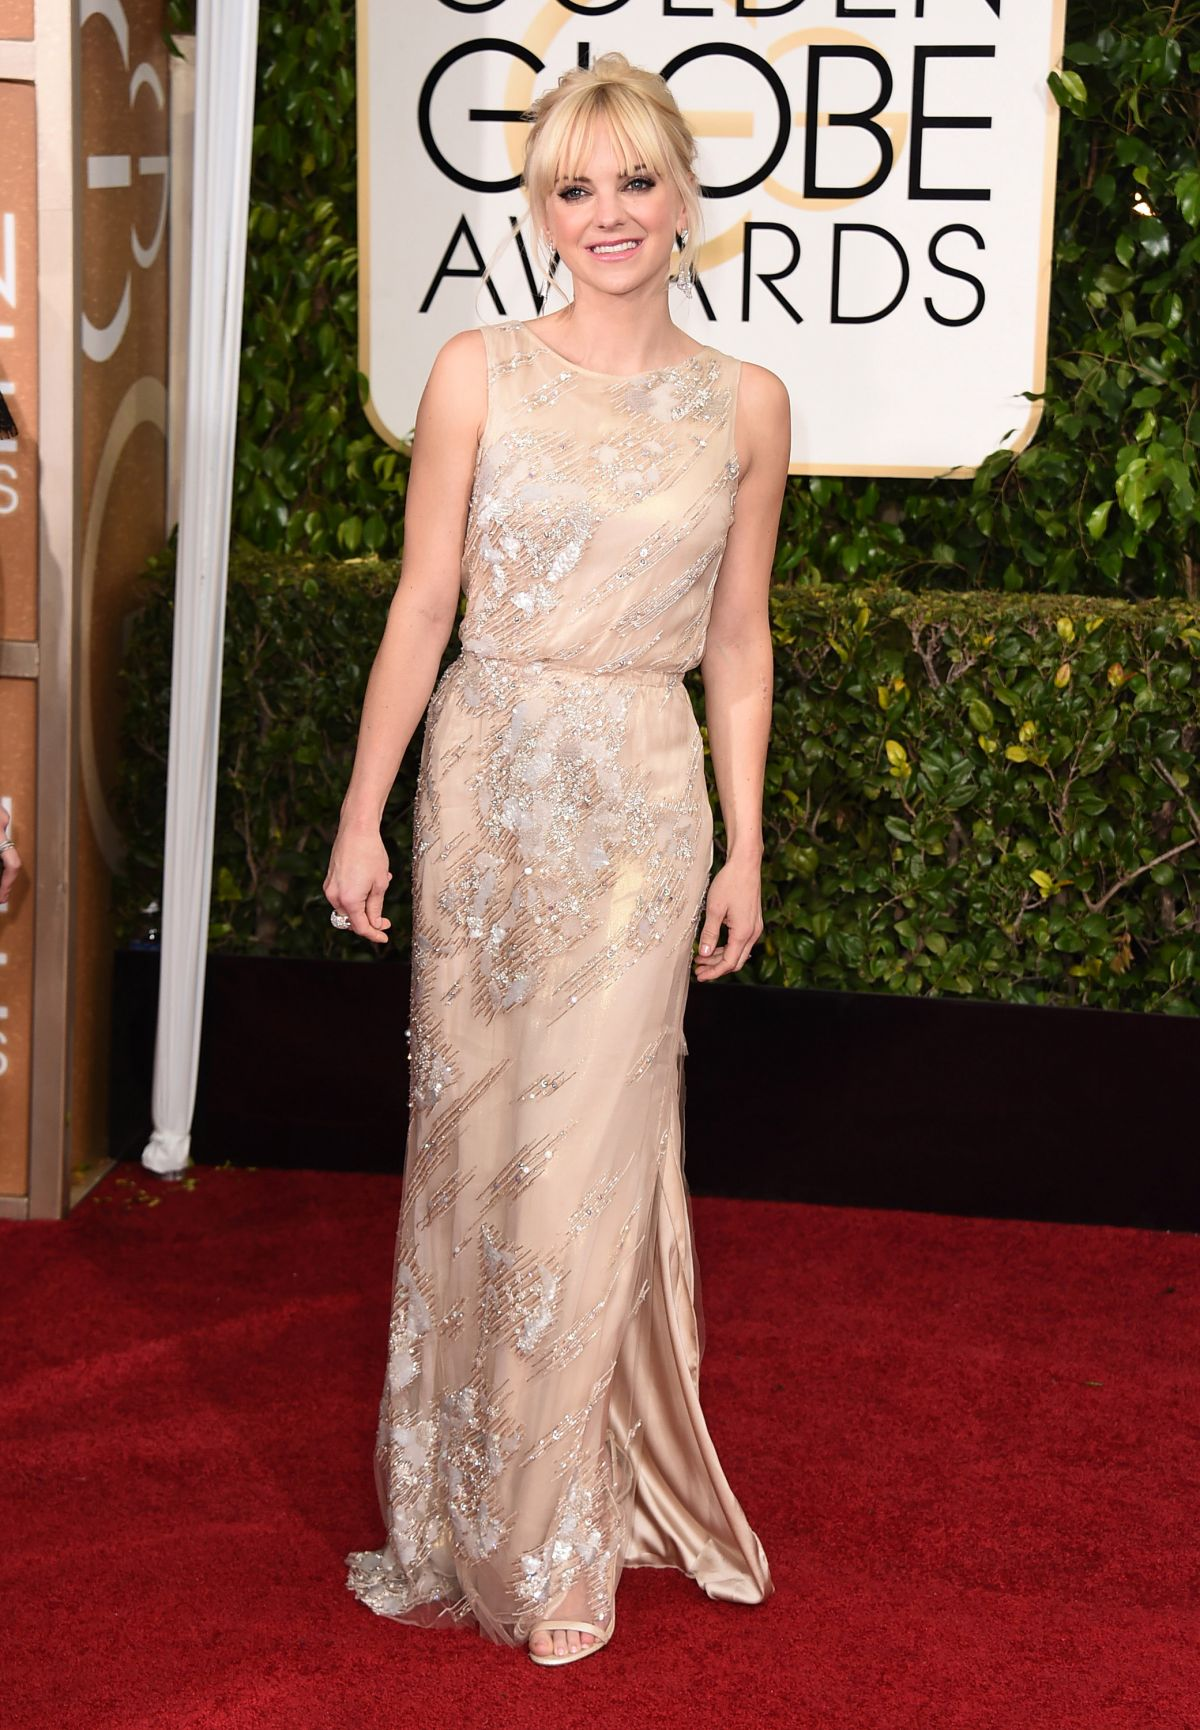 ANNA FARIS at 2015 Golden Globe Awards in Beverly Hills